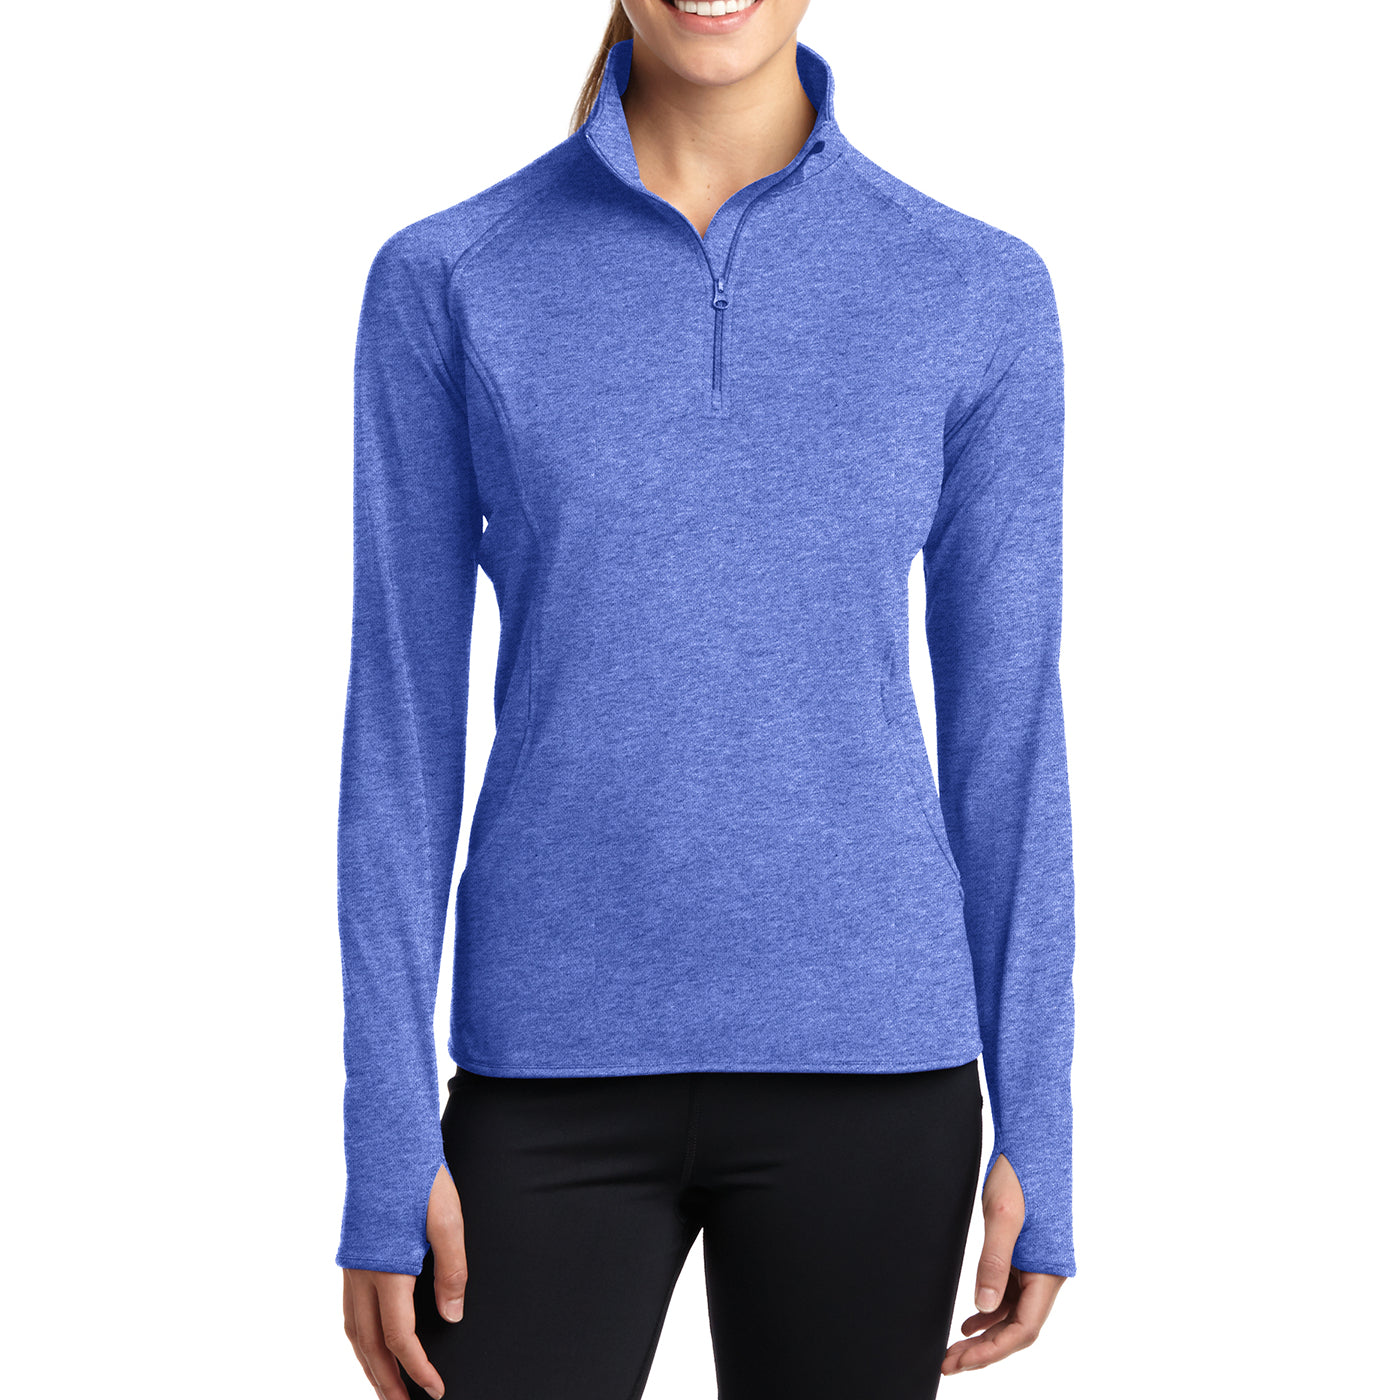 Women's Sport Wick Stretch 1/2 Zip Pullover - True Royal Heather - Front